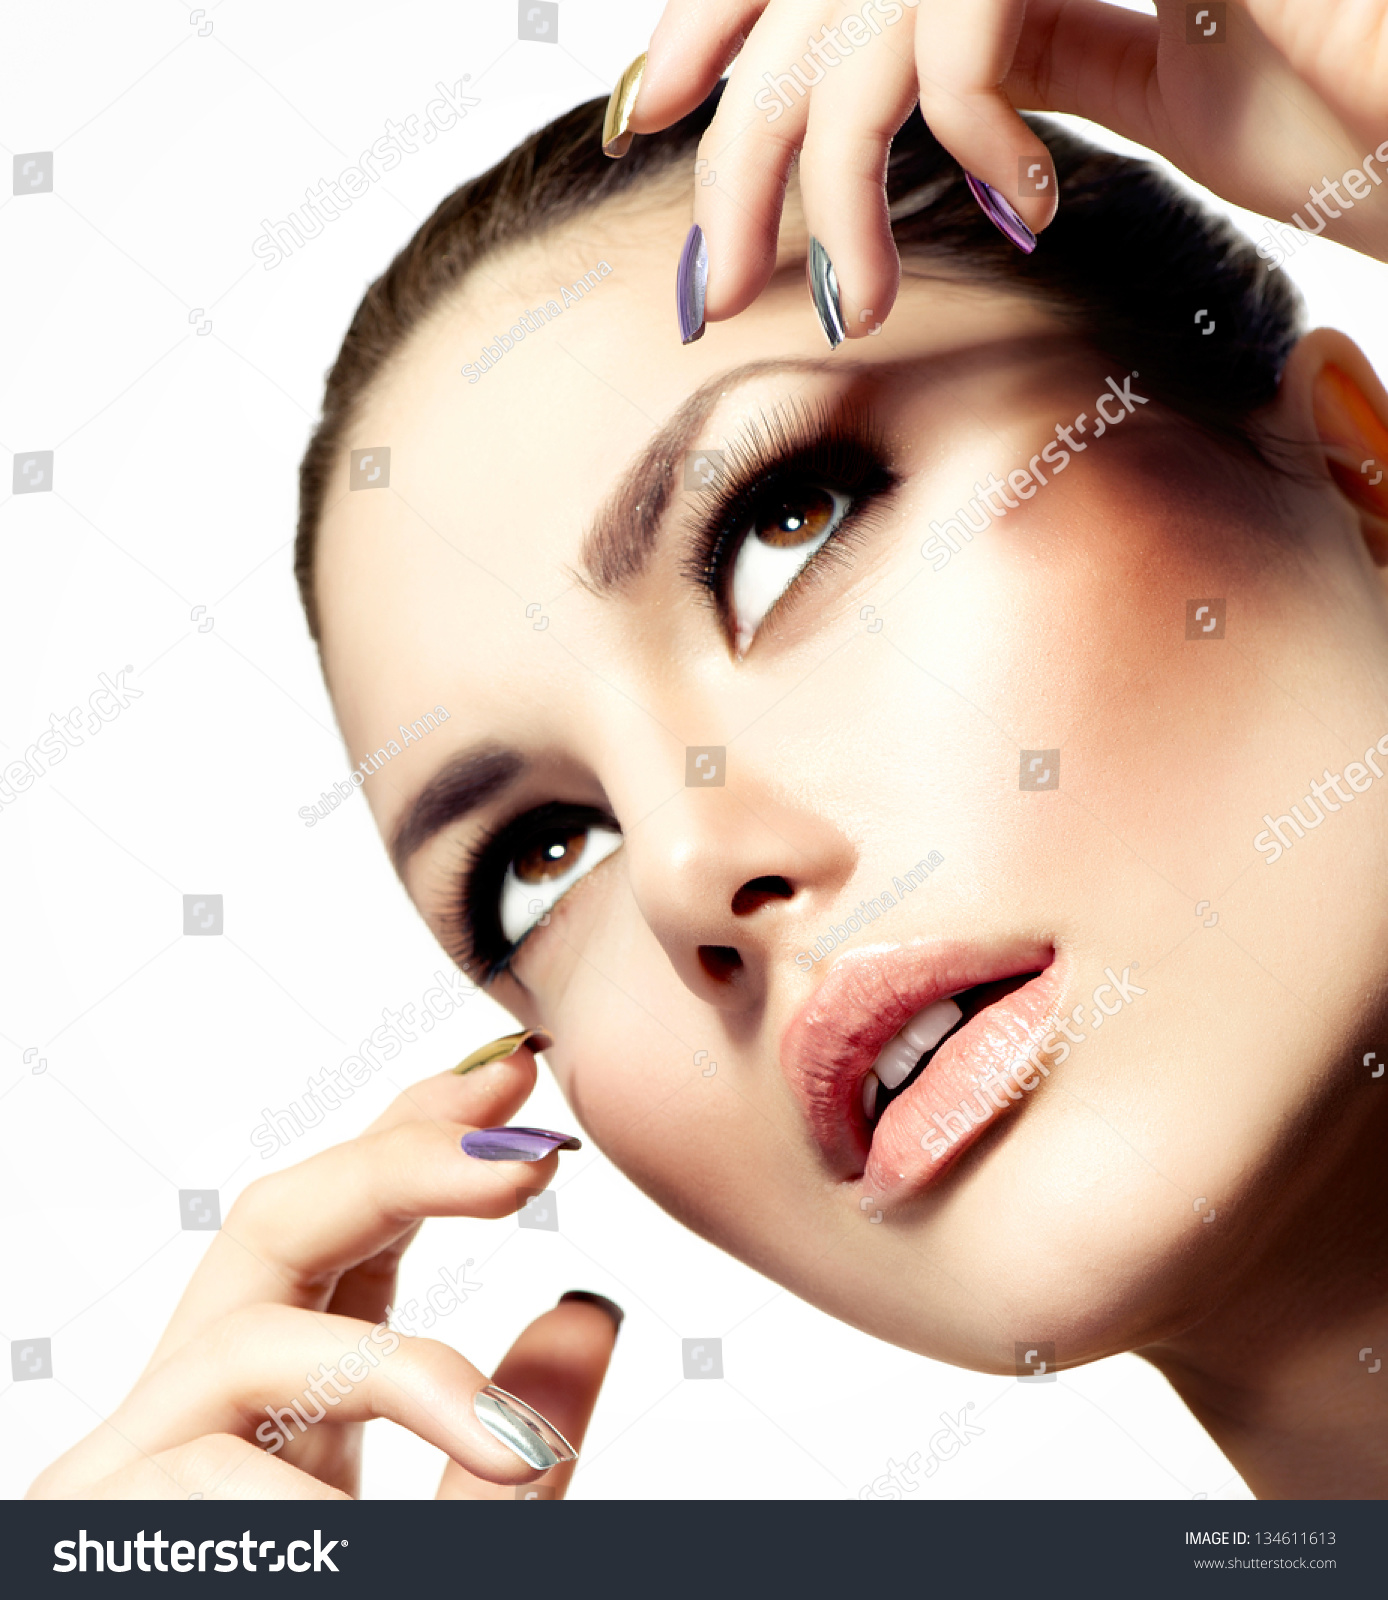 Fashion Beauty Model Vogue Style Glamour Woman Manicure And Make Up Nail Art Beautiful Girl